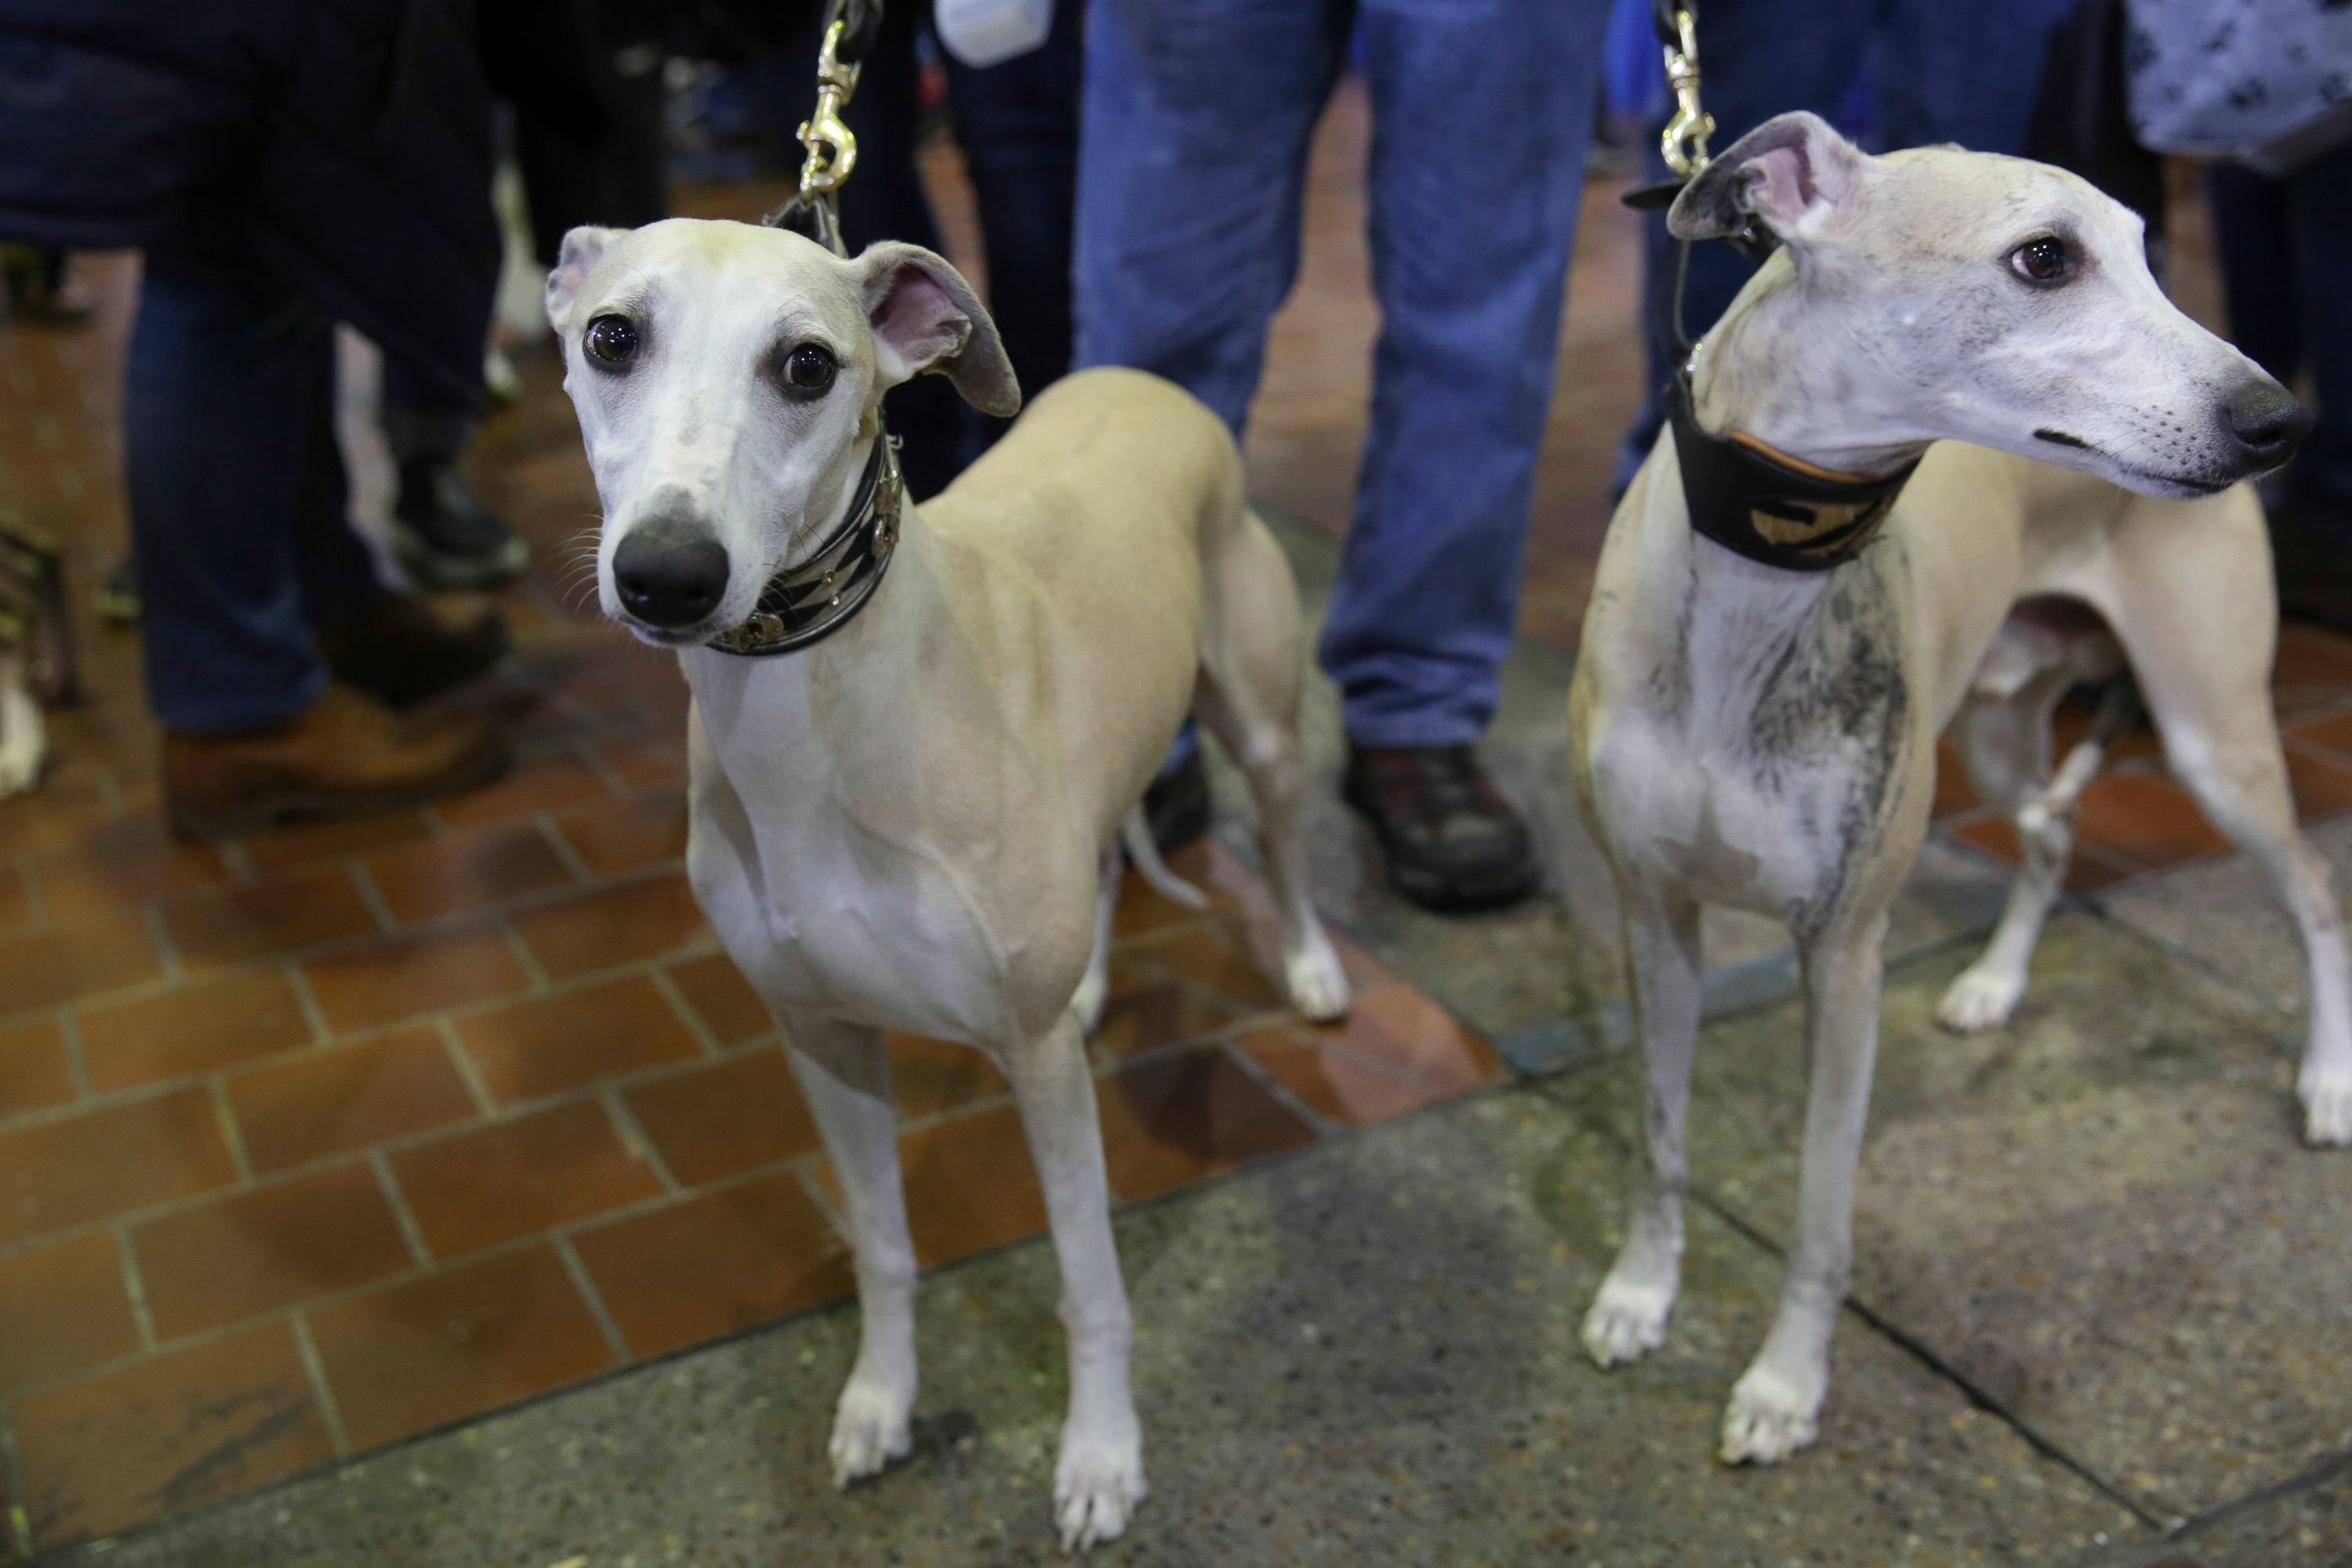 Whippets named Moe and Houdini participate in the 8th annual American Kennel Club Meet the Breeds event held at Pier 92 on February 11, 2017 in New York City. | Source: Getty Images